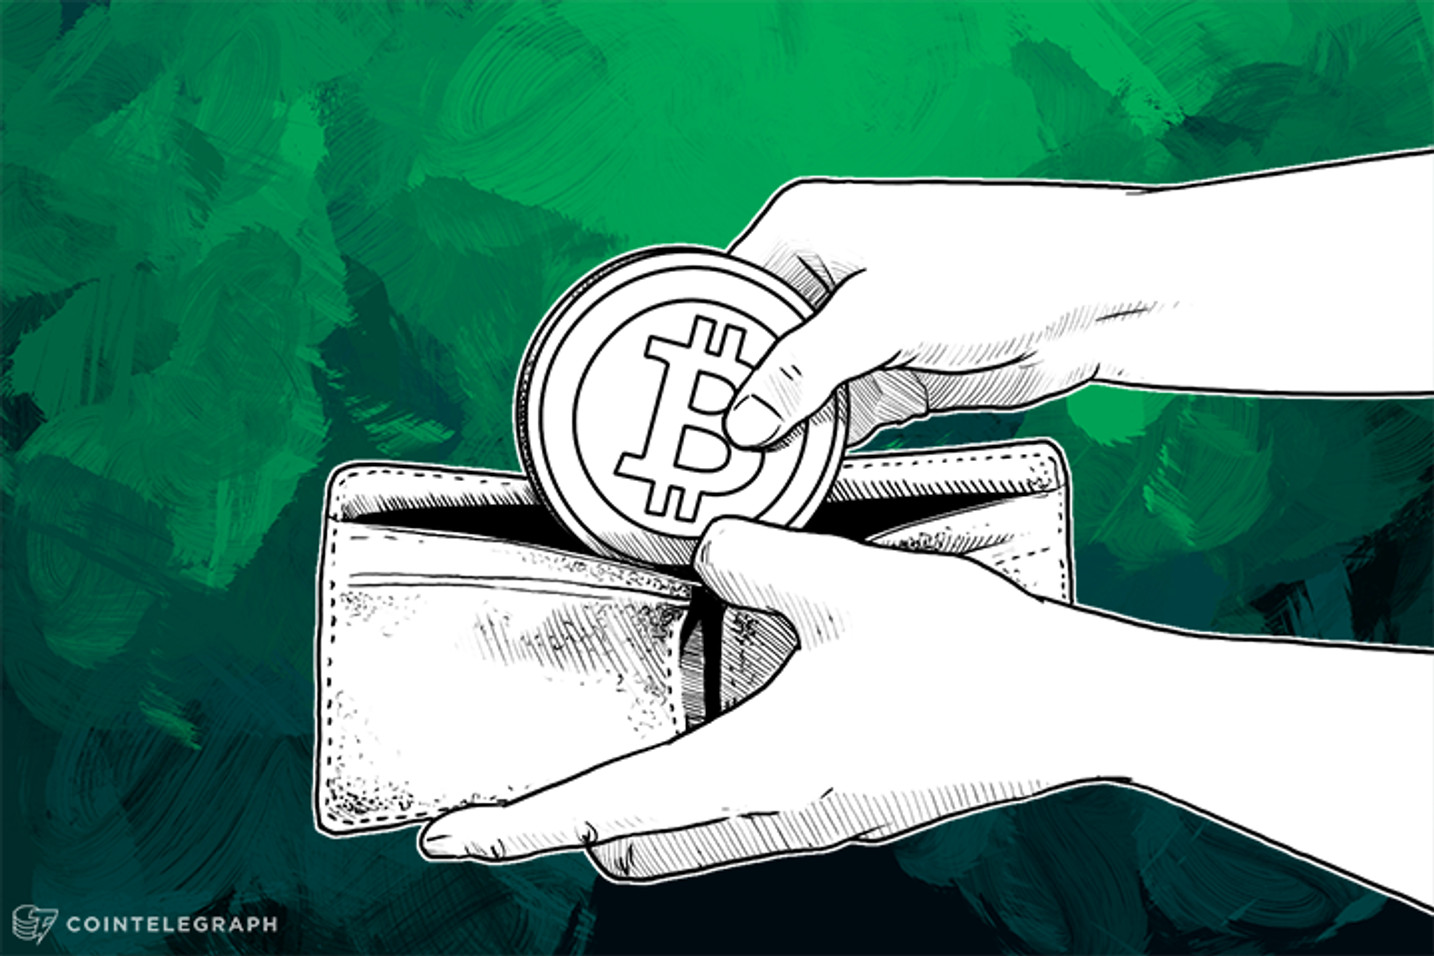 Europeans Can Now Receive Their Paycheck in Bitcoin